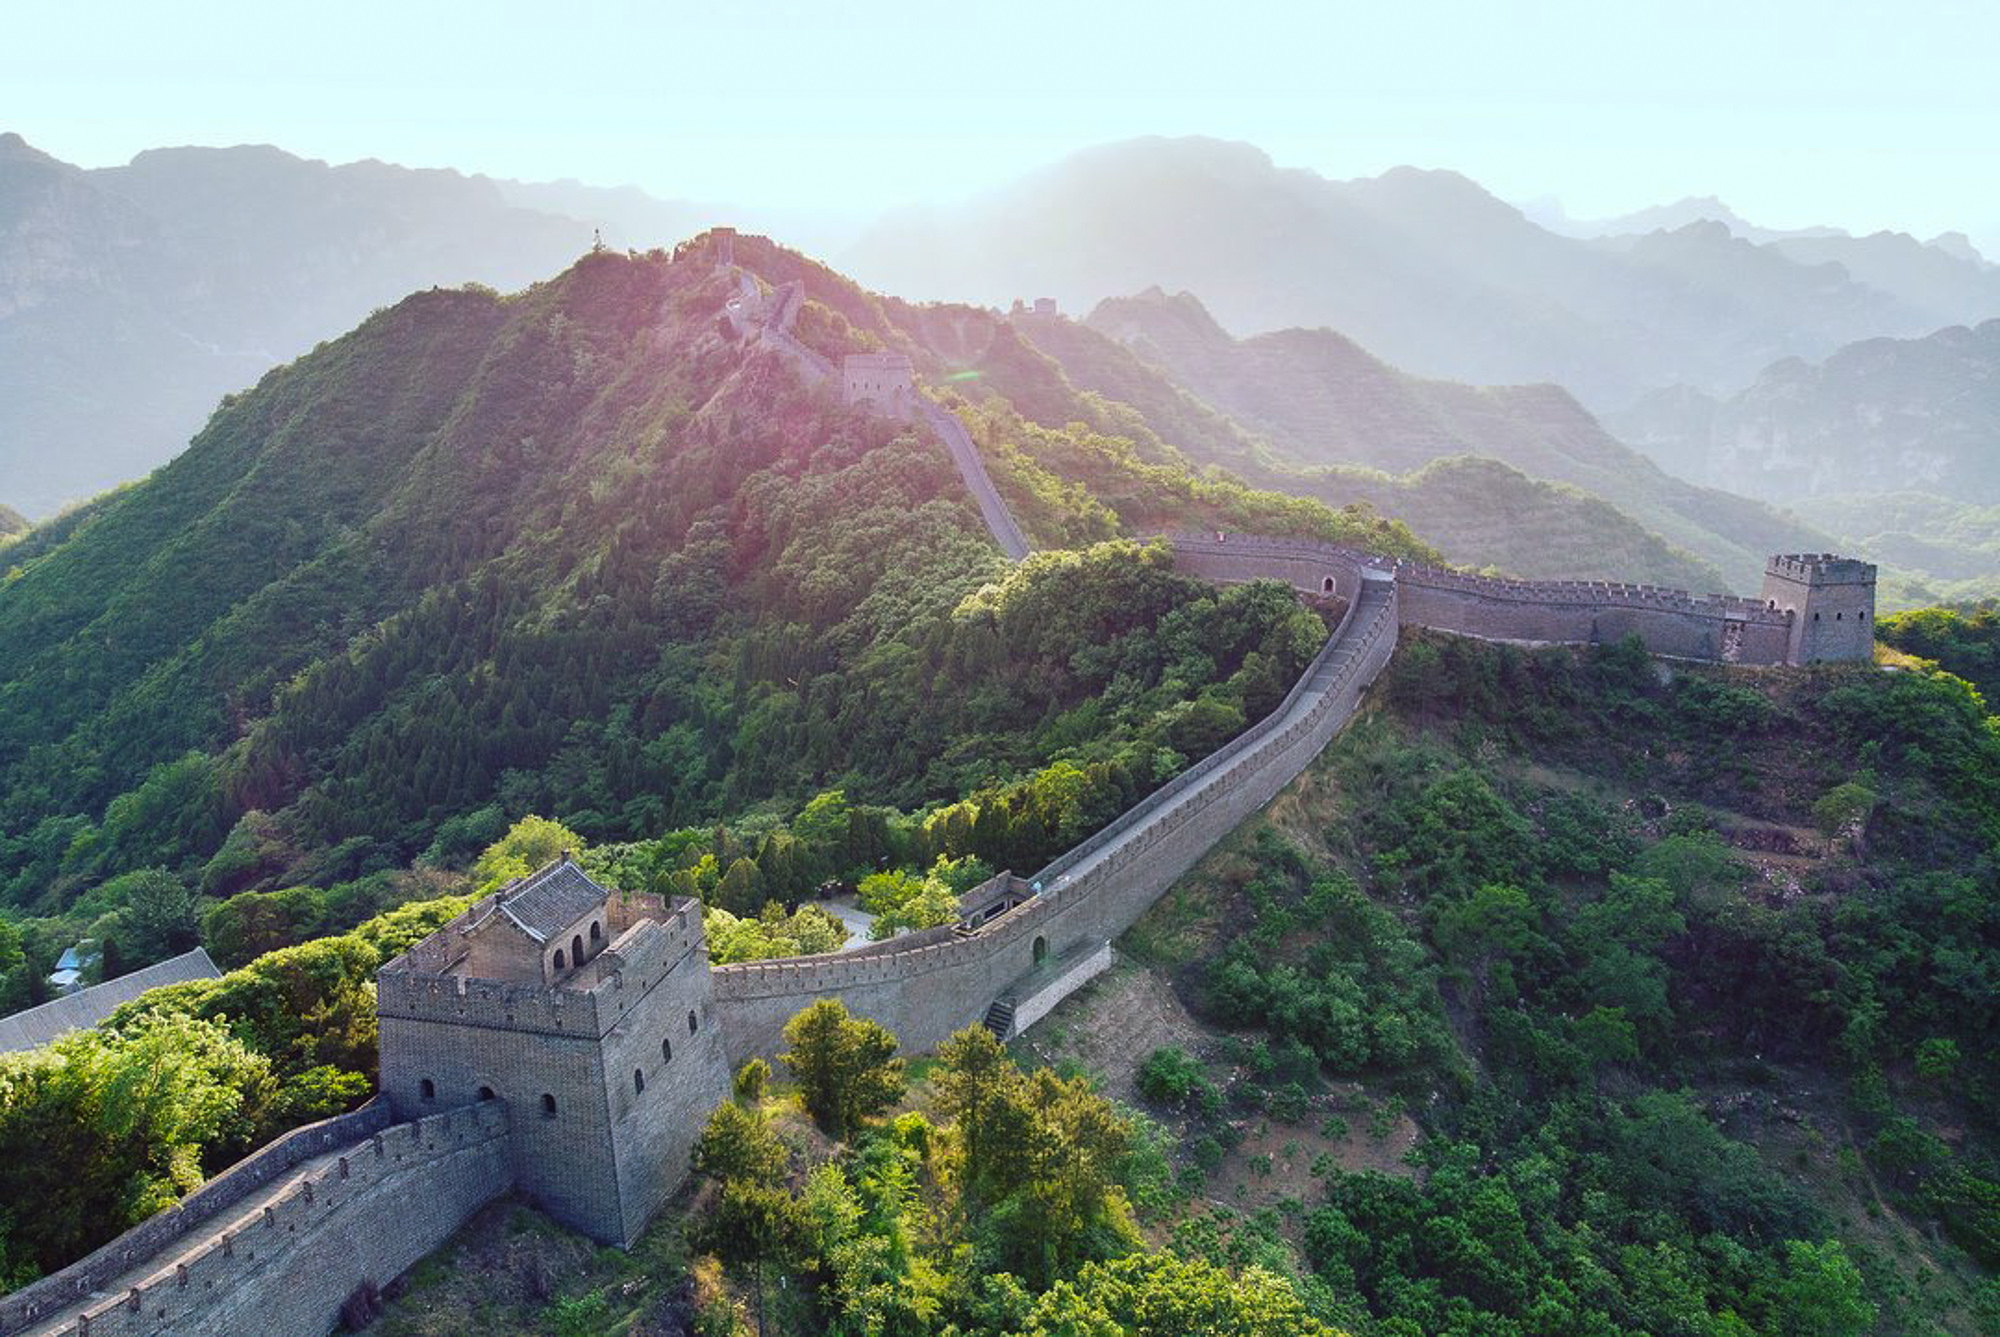 The Great Wall Marathon, China, marathon number 18 out of 52. Photo taken by Kip Patterson.